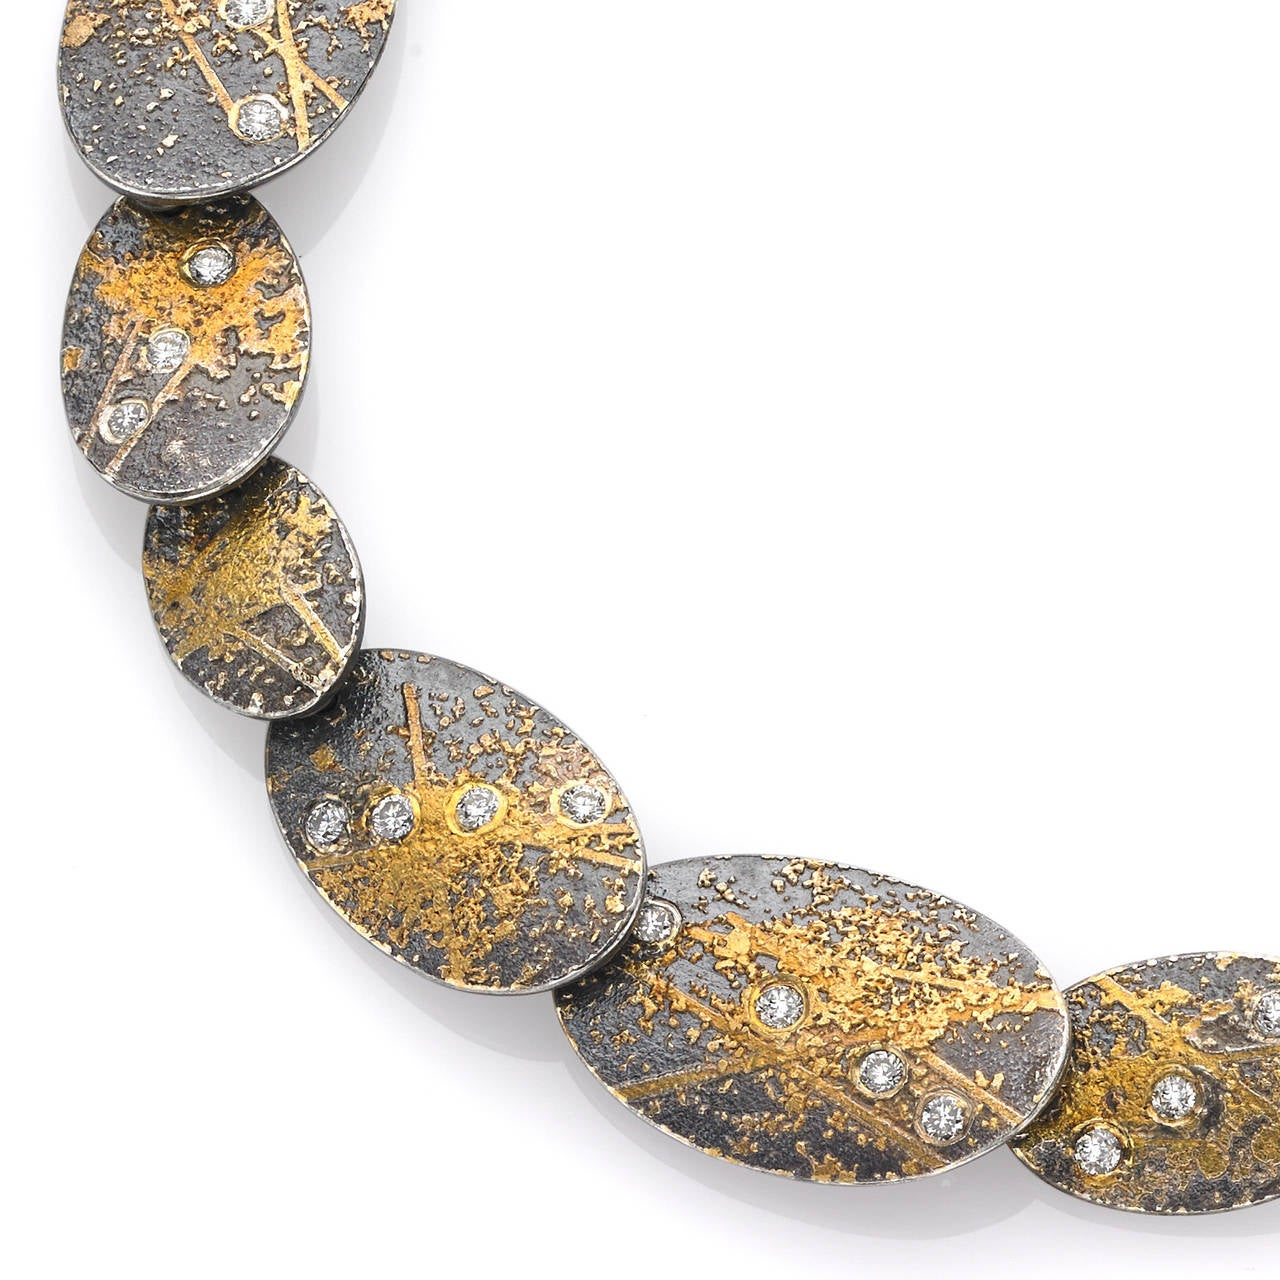 One-of-a-Kind Oval Links Bracelet handcrafted in Germany by renowned jewelry maker Atelier Zobel (Peter Schmid) in 18k yellow gold, 24k gold, and oxidized sterling silver with 0.25 carats of round brilliant-cut white diamonds. Stamped and Hallmarked.